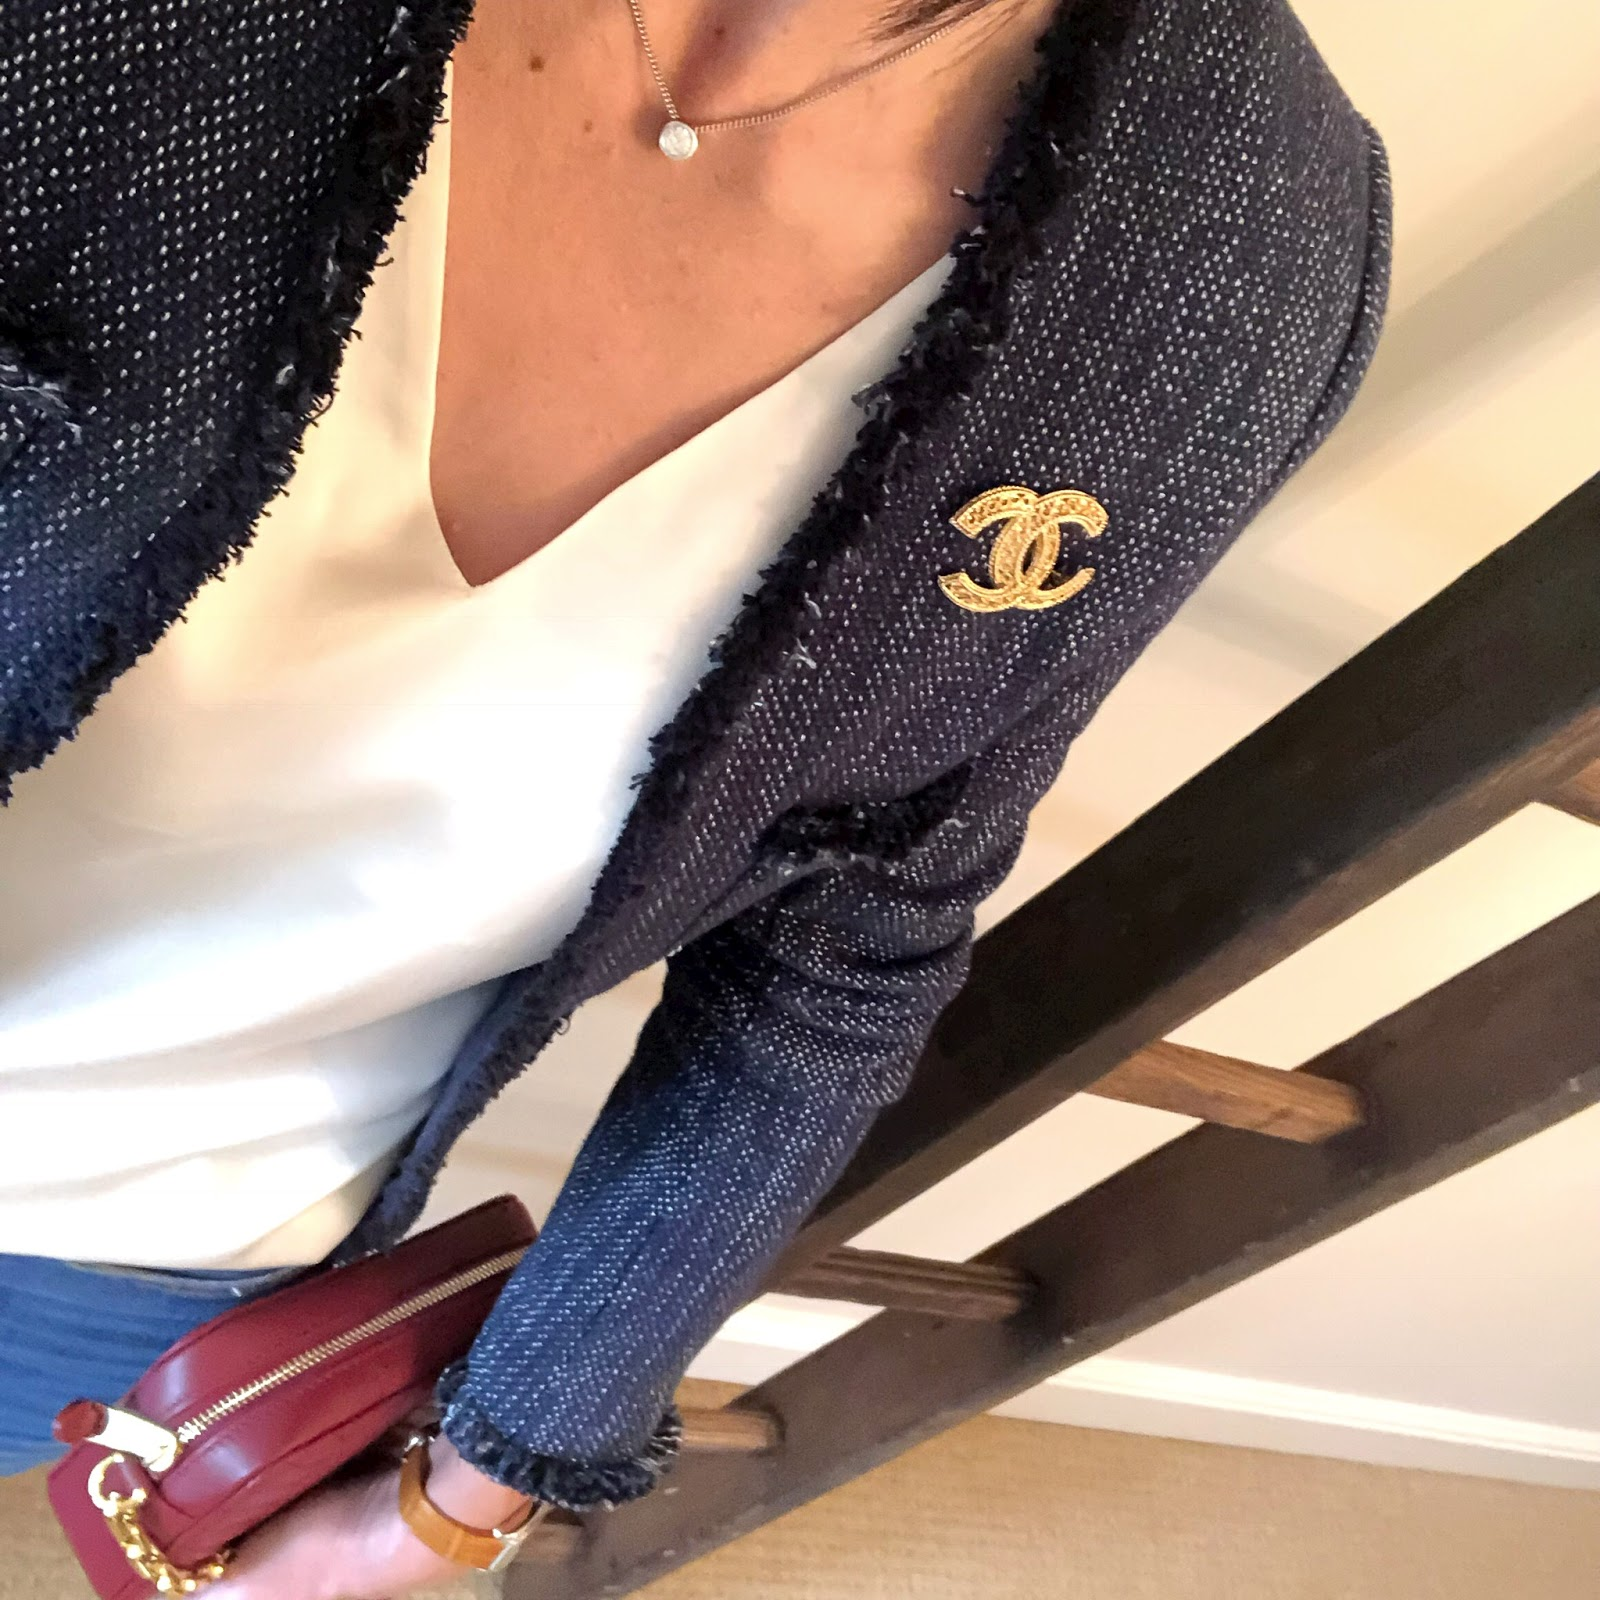 my midlife fashion, l'agence jacket, marks and spencer silk top, lauren ralph lauren payton small cross body bag, j crew billie demi boot crop jeans, j crew pointed metallic flats